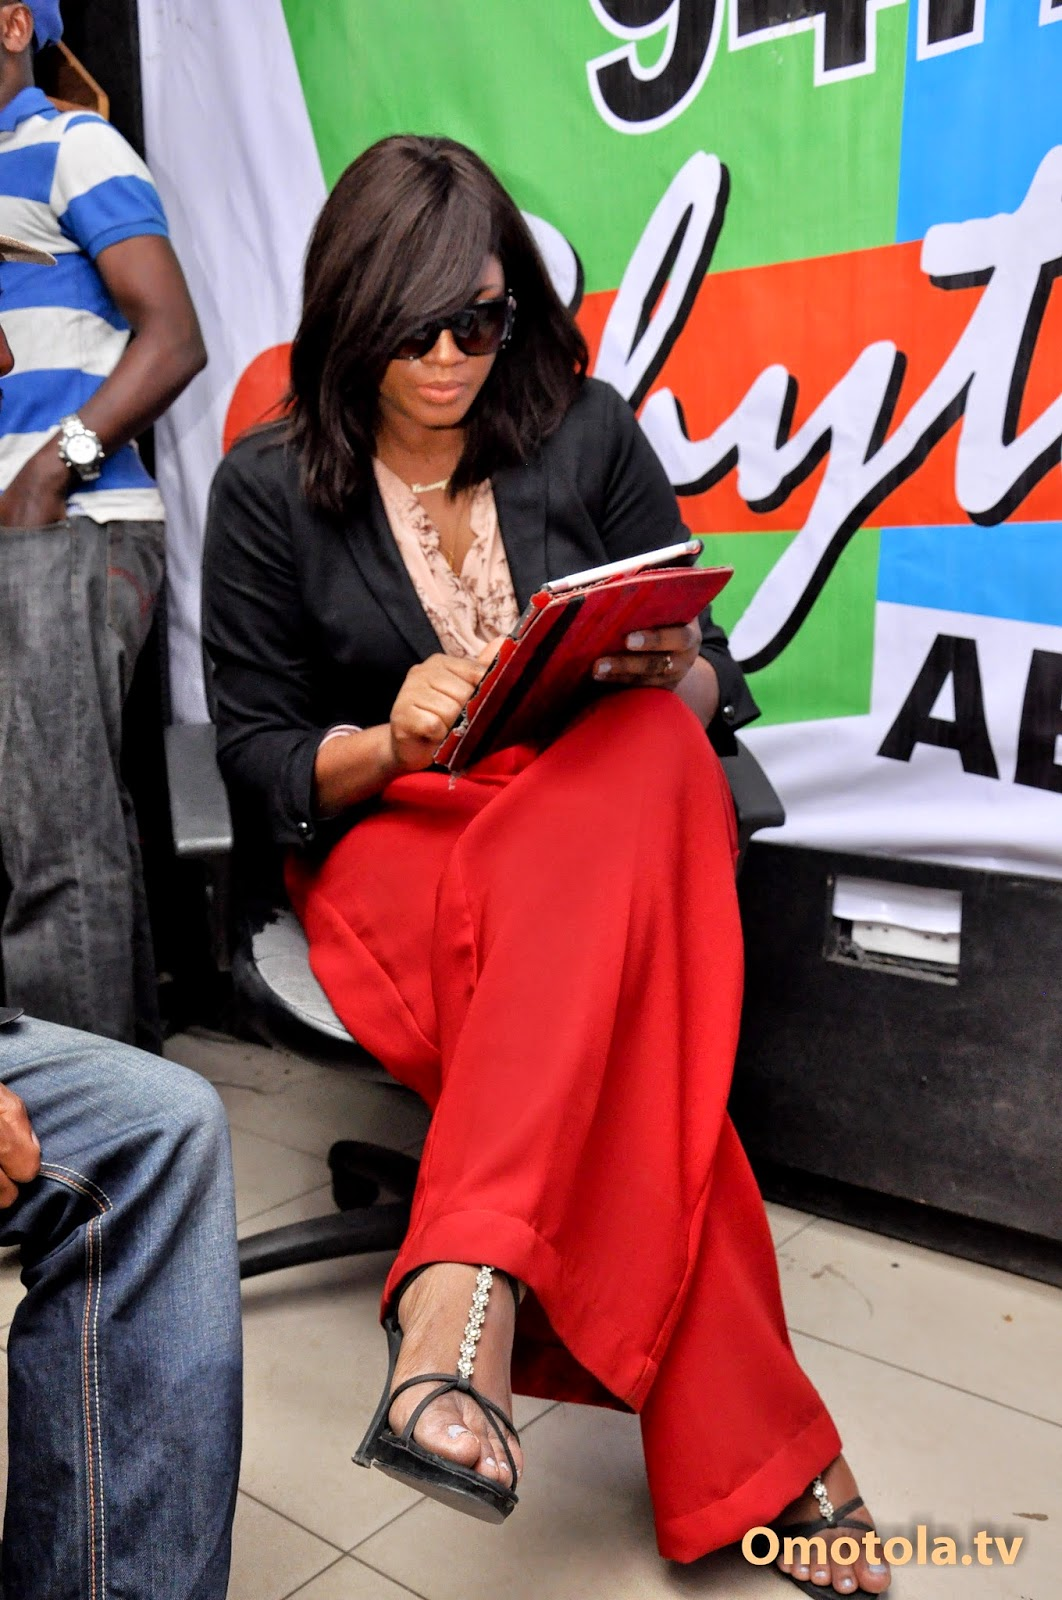 omotola at 20 tour